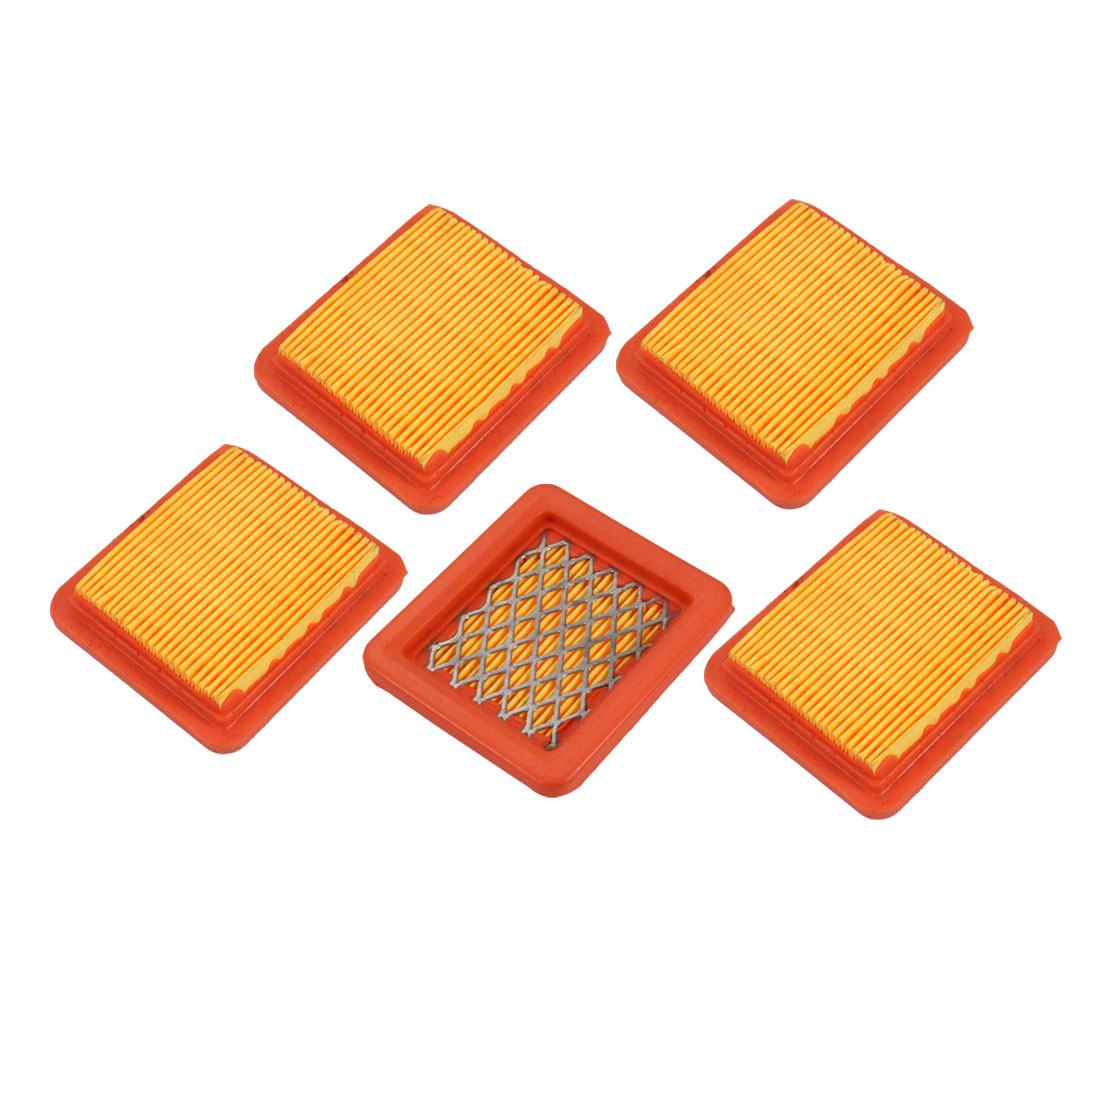 5pcs New Replacement Extra Guard Panel Engine GX35 Air Filter Cleaner Accessory